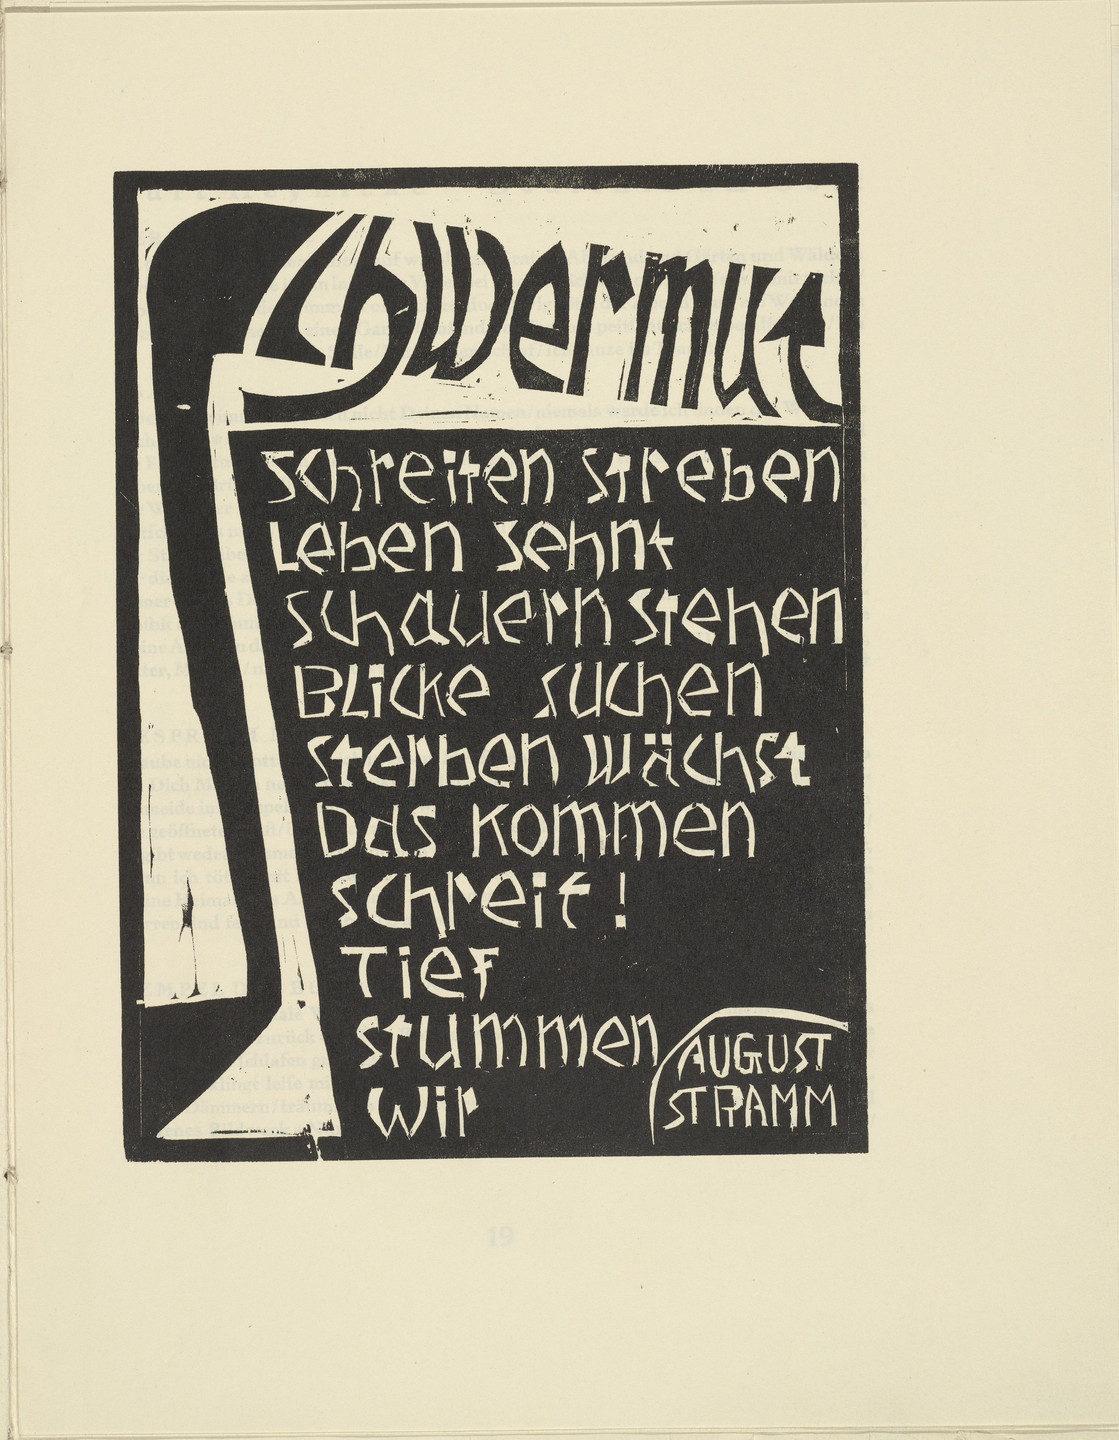 Karl Opfermann. Melancholia (Schwermut) from the periodical Kündung, vol. 1, no. 2 (February 1921). 1921 (executed 1920)